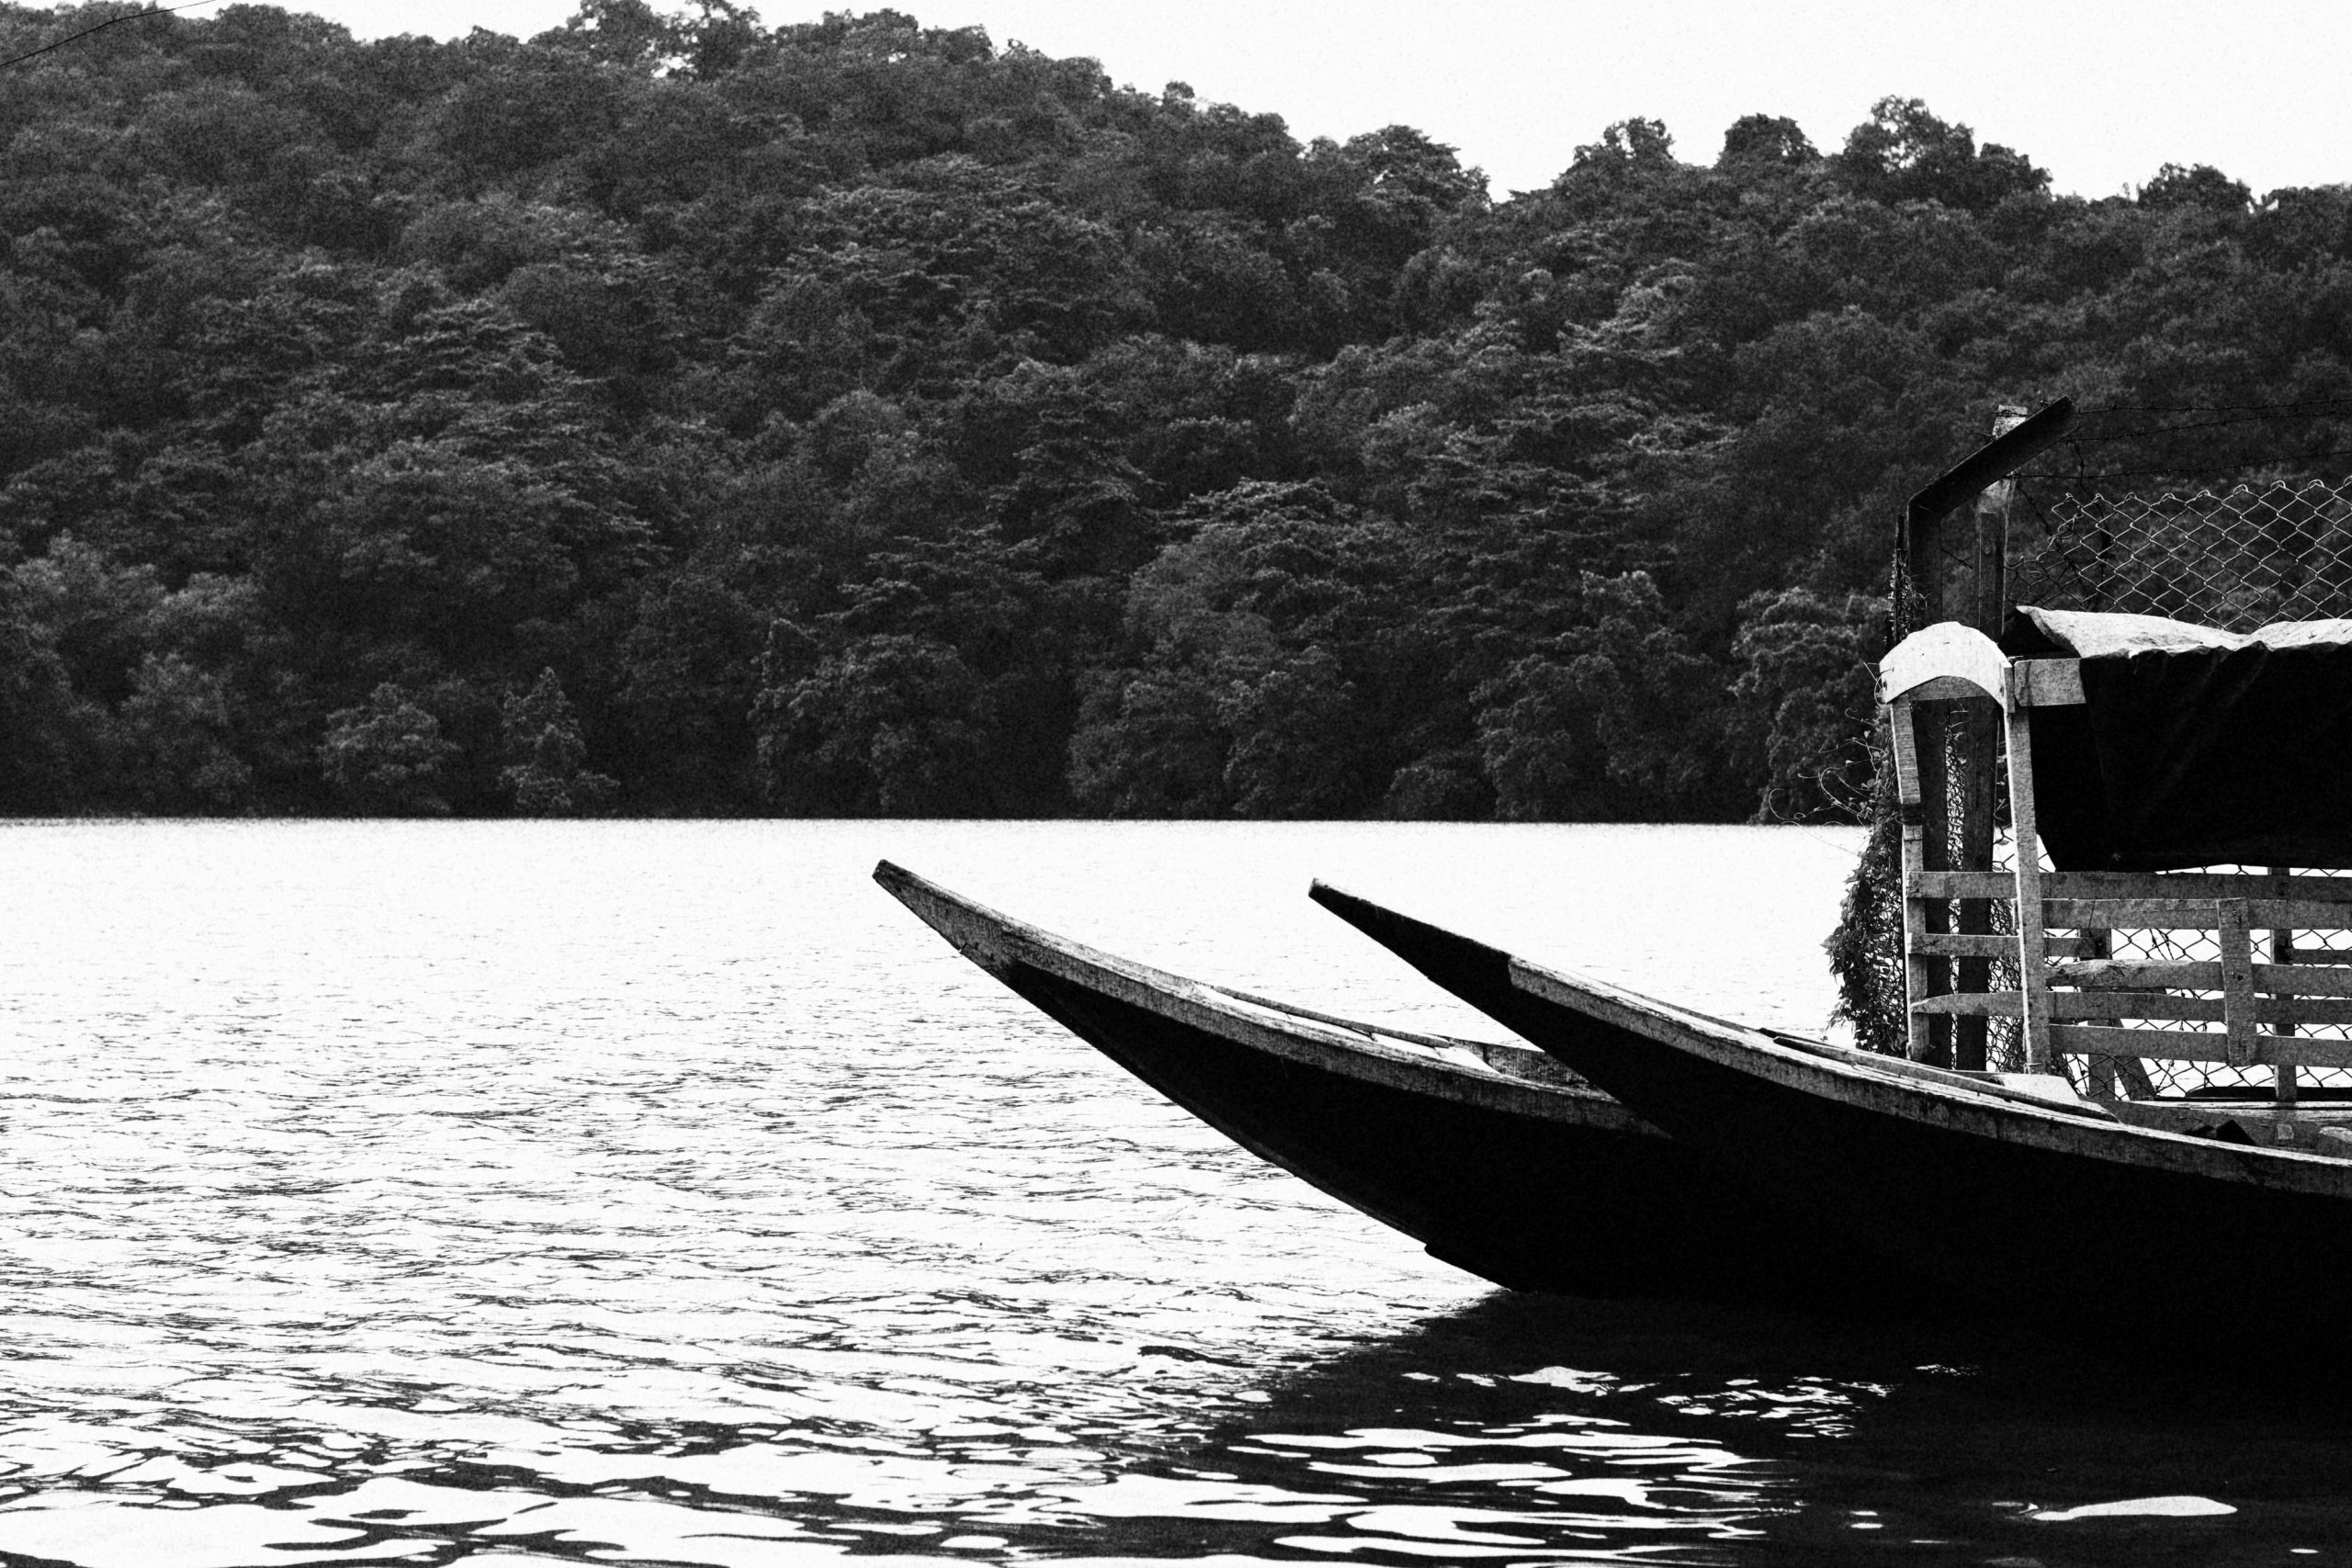 Boats and nature in a black and white color